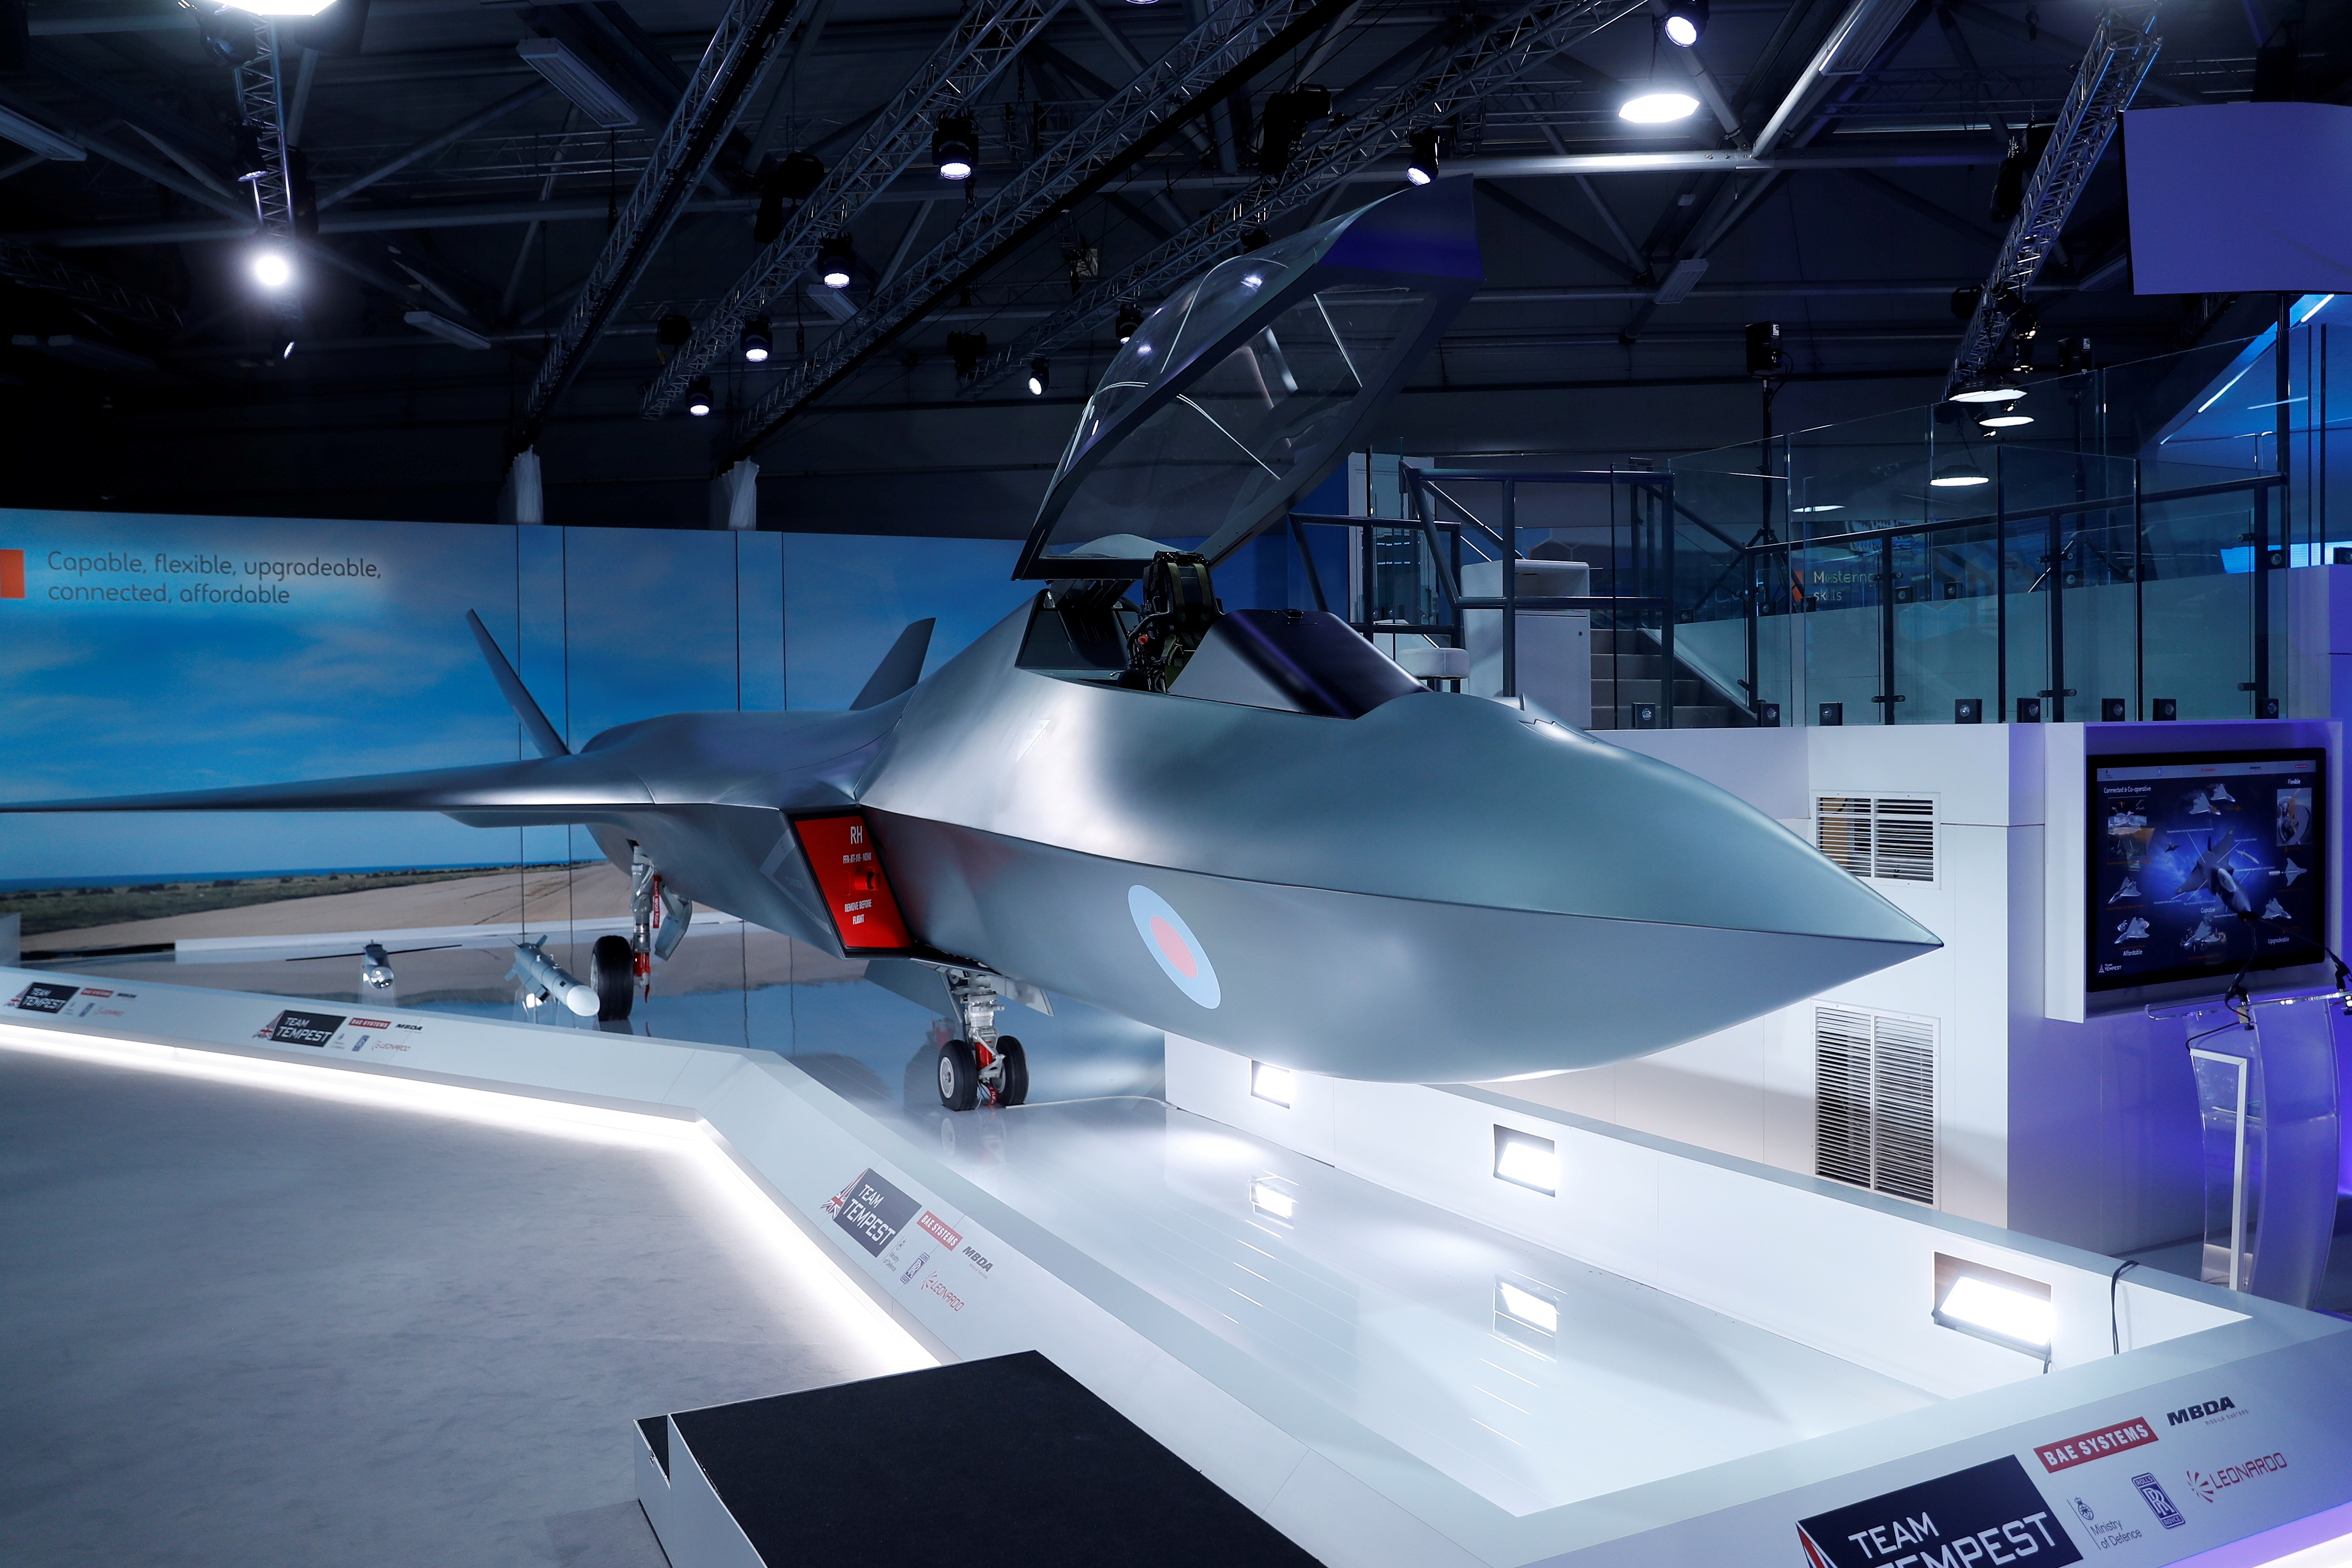 FILE - A model of a new British jet fighter, called Tempest, is unveiled at the Farnborough Airshow, in Farnborough, Britain, July 16, 2018.